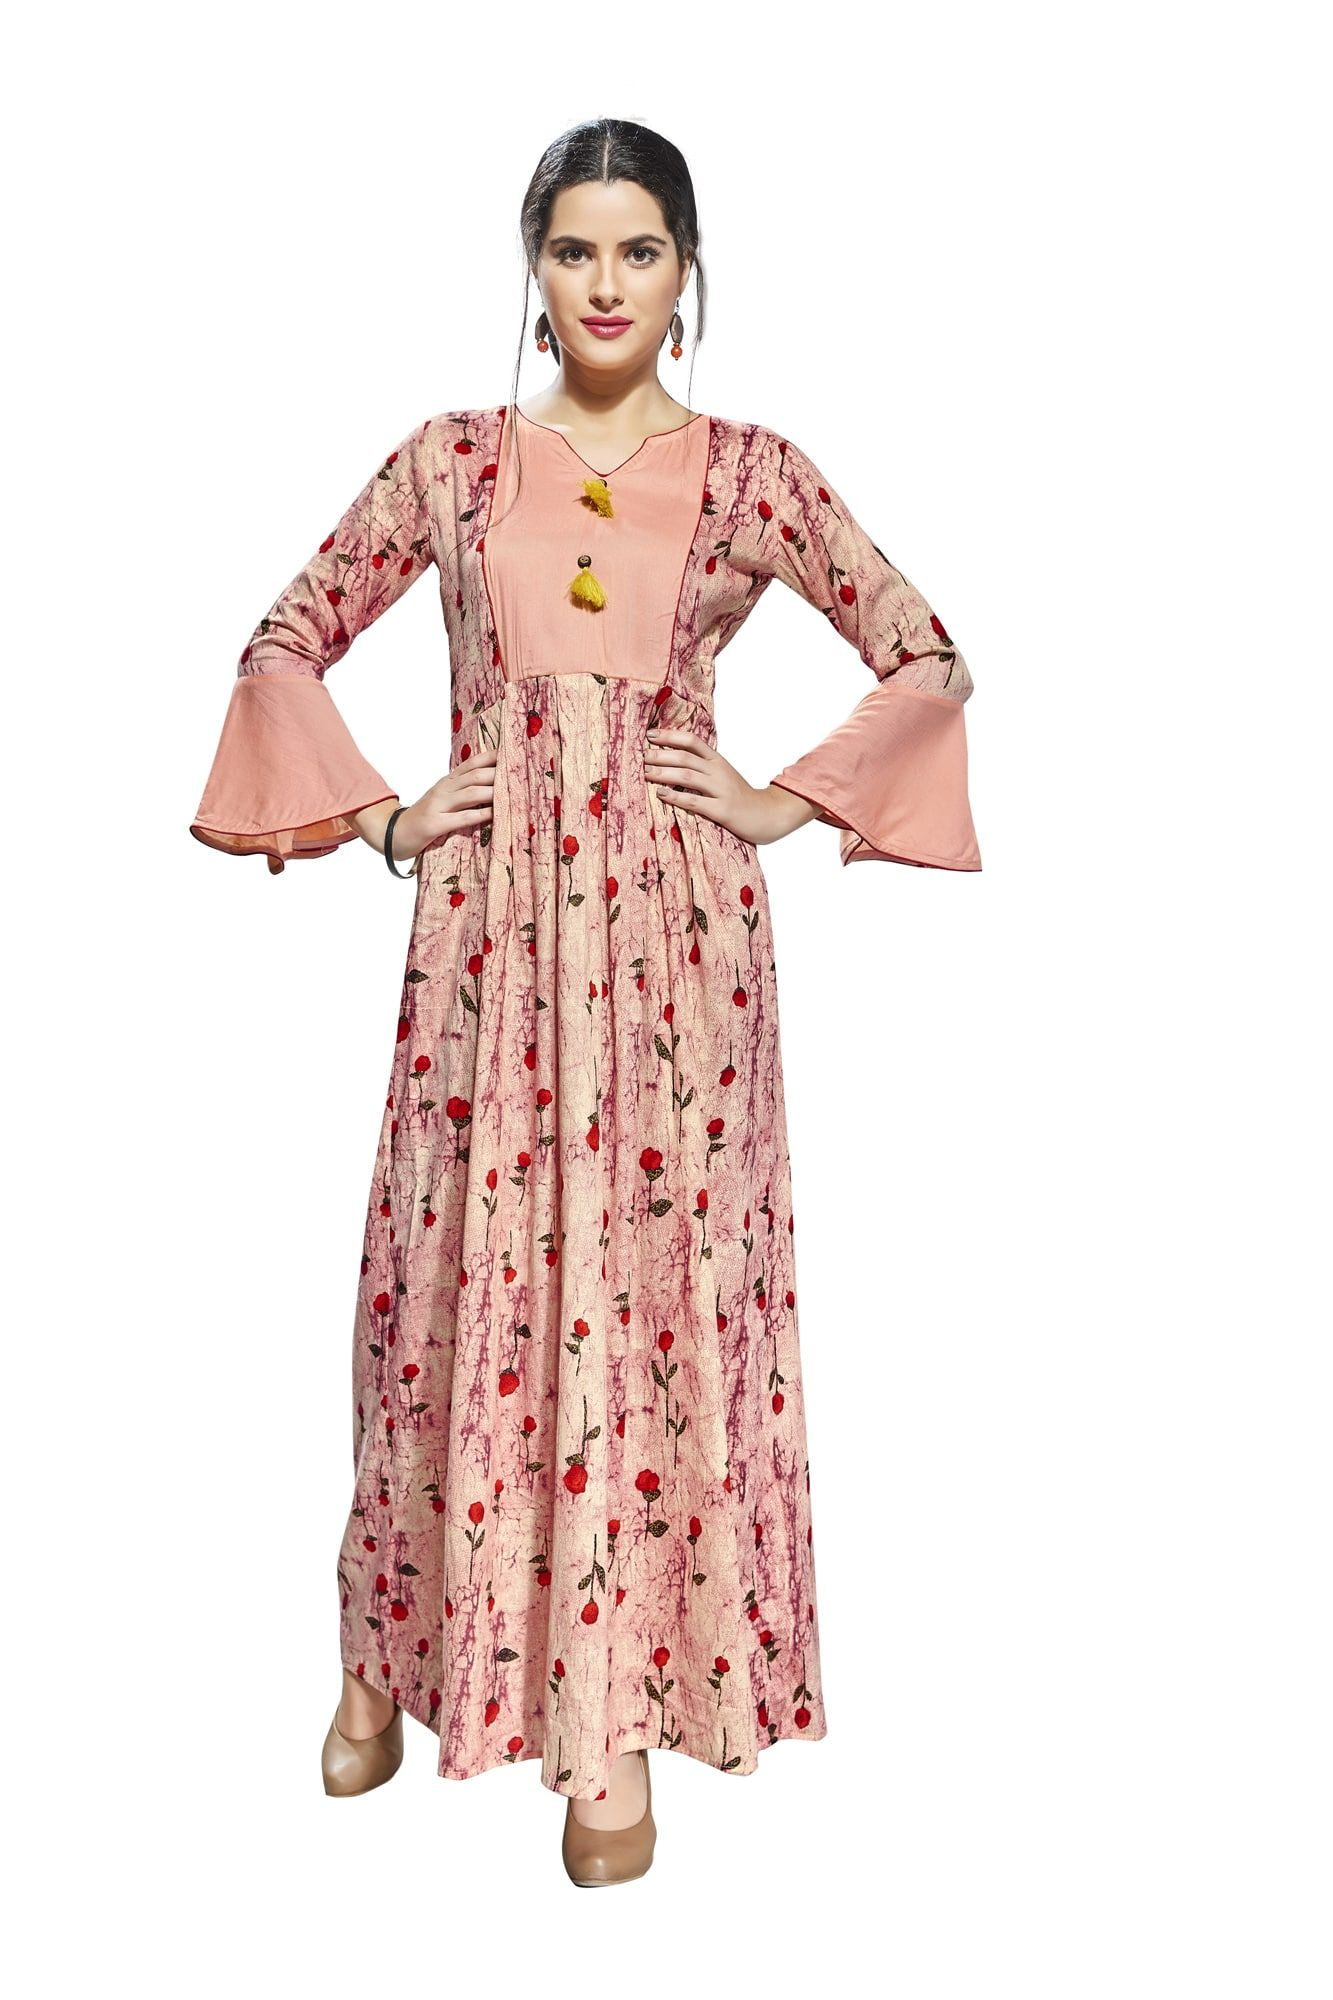 82453a736 Buy Anuswara Pink Color Rayon Printed Ankle Length Anarkali Kurti online. ✯  100% authentic products, ✯ Hand curated, ✯ Timely delivery, ...